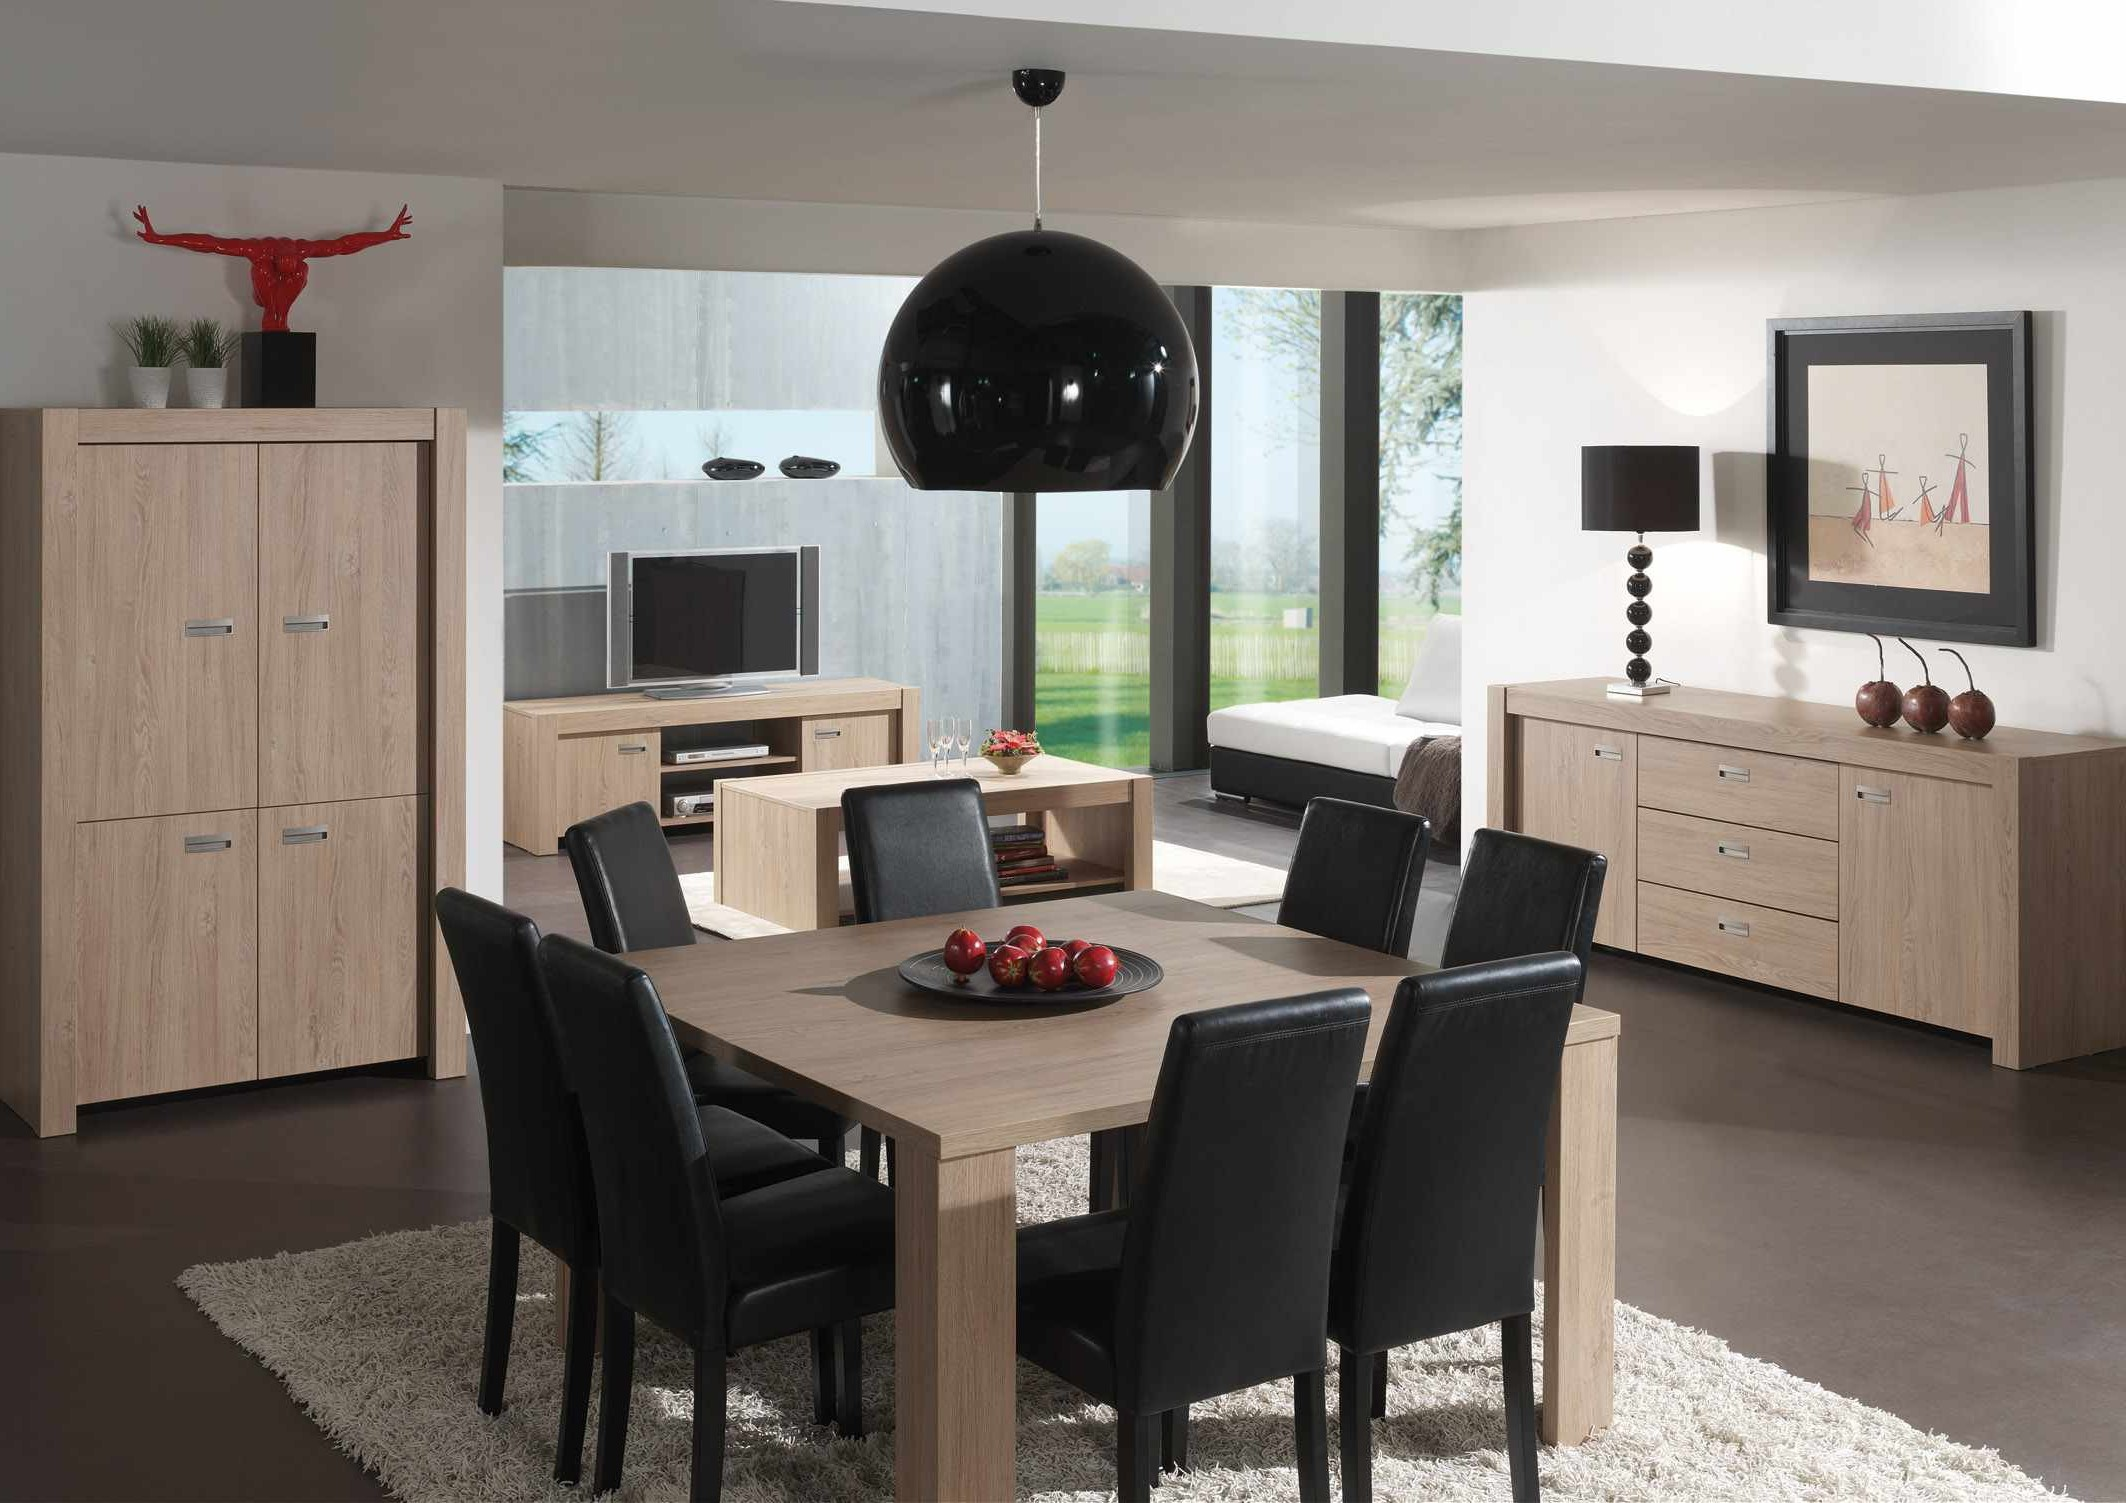 table chaise salle a manger pas cher with chaise salle a. Black Bedroom Furniture Sets. Home Design Ideas